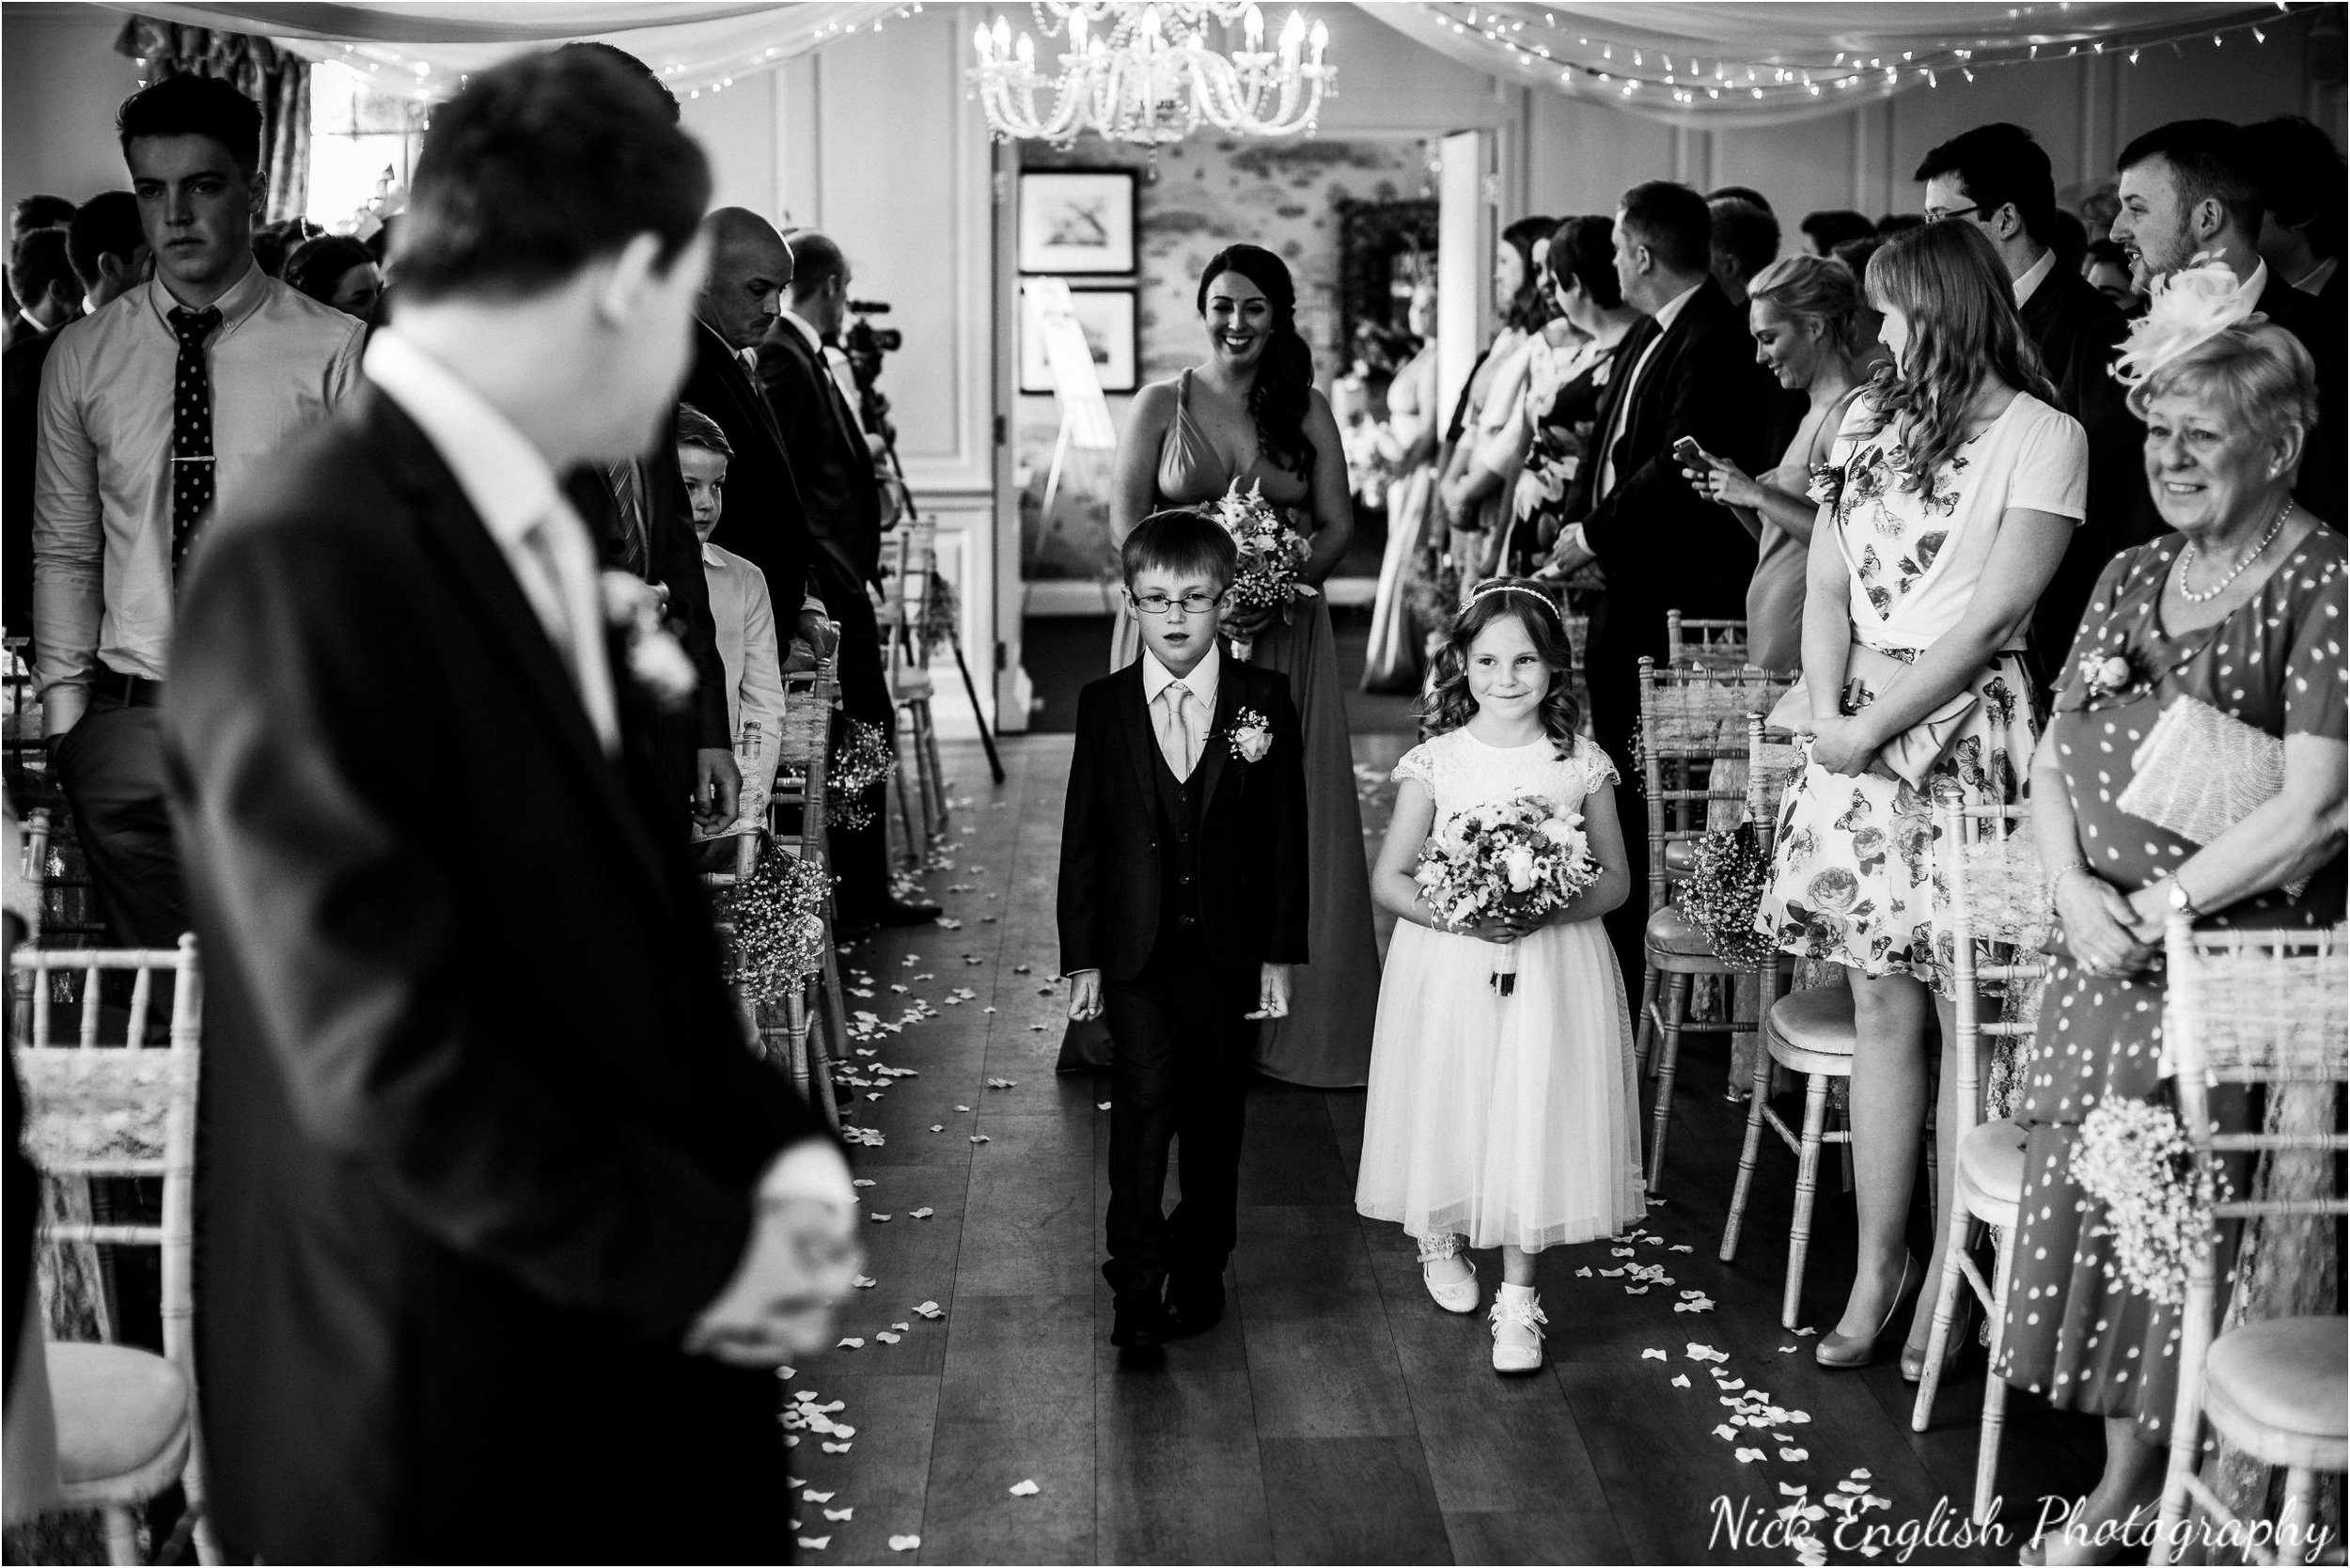 Alison James Wedding Photographs at Eaves Hall West Bradford 92jpg.jpeg